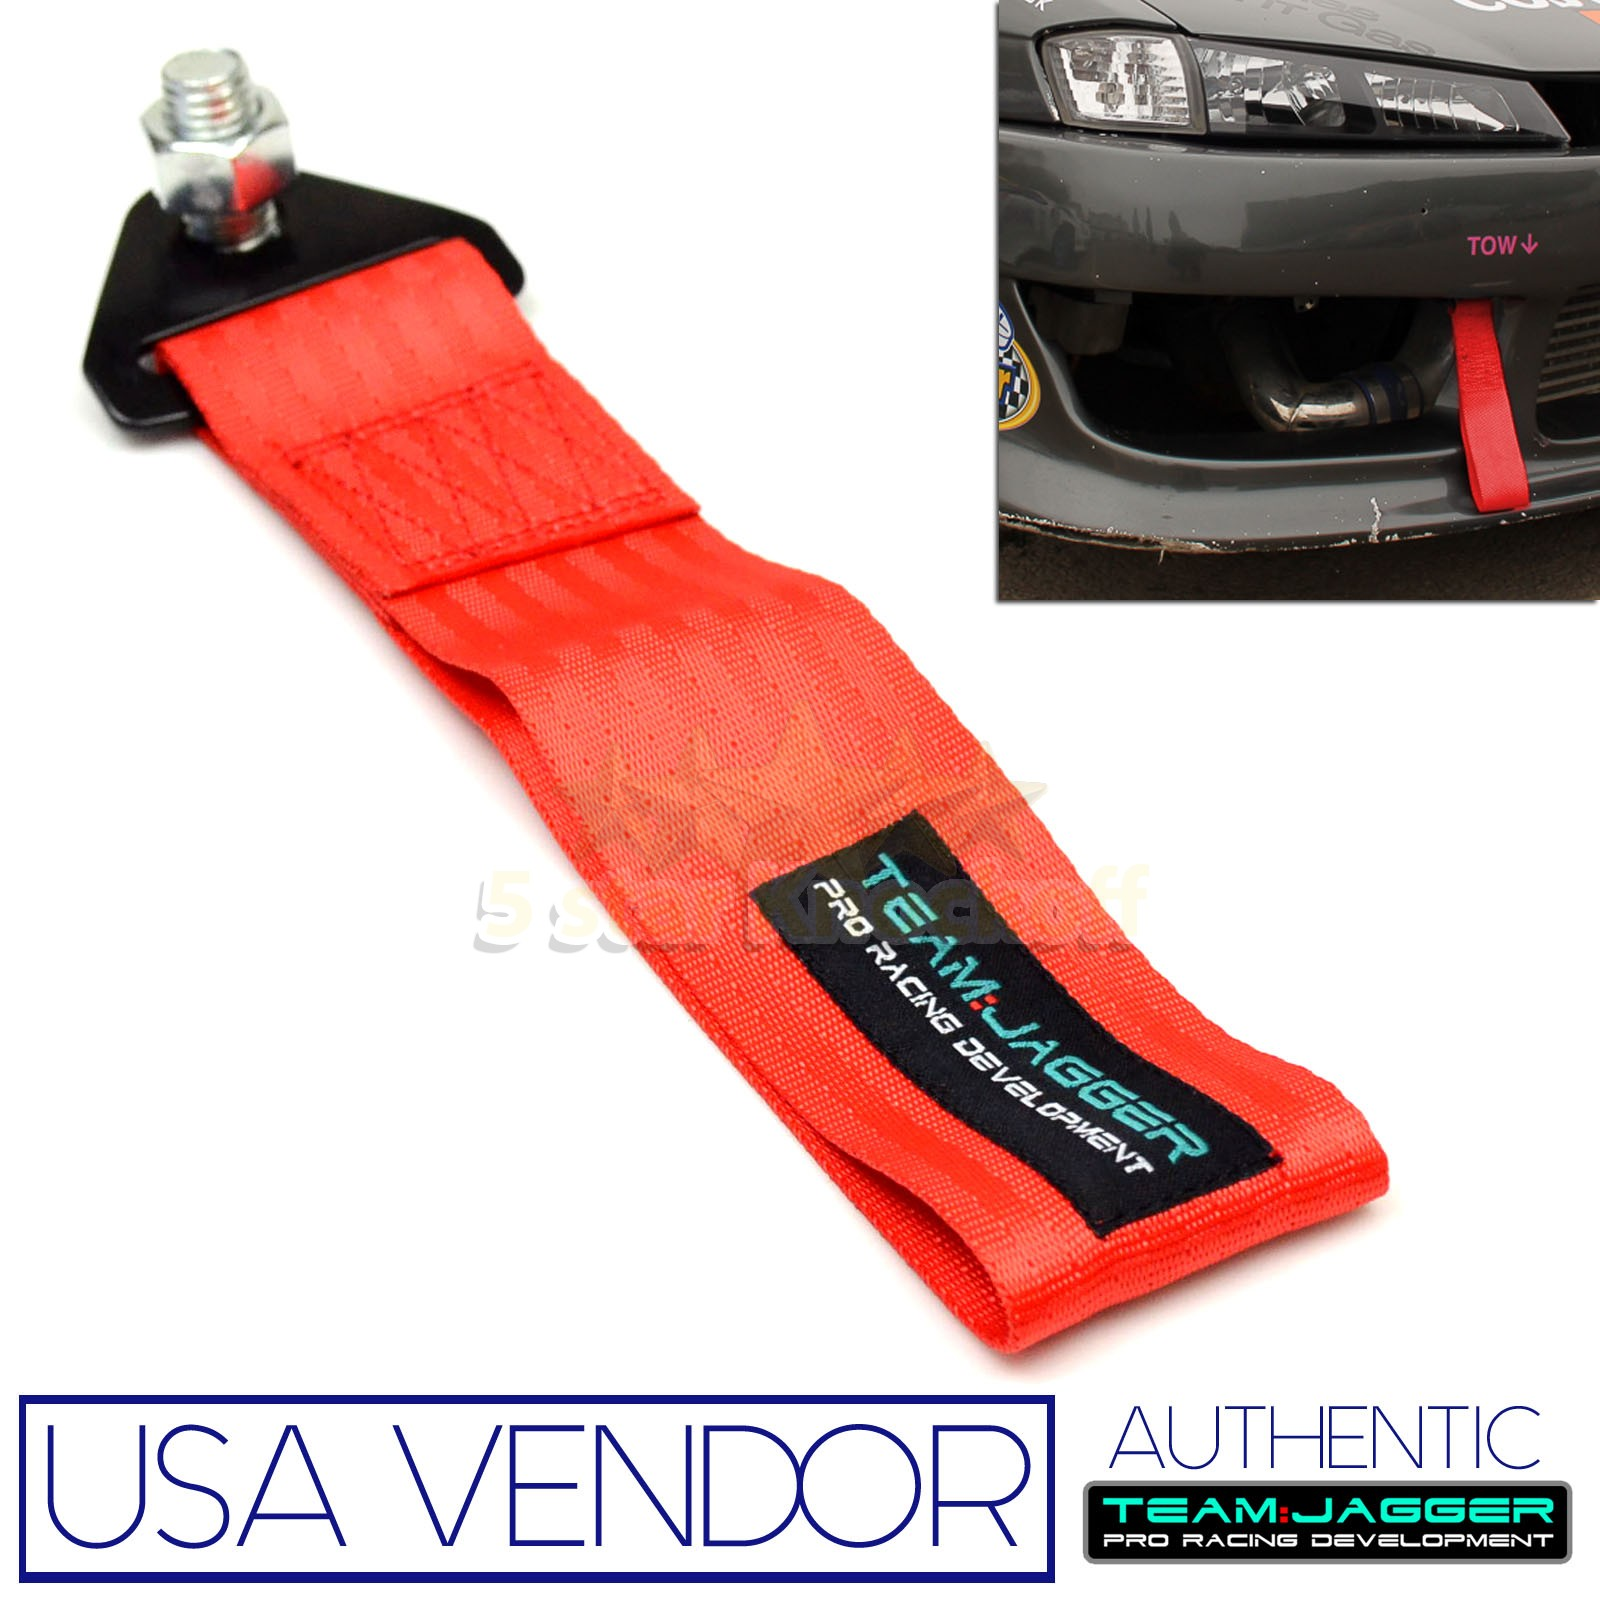 FOR CADDY AND MAZDA CARS! JDM RACING FRONT TOW PULLING STRAP BUMPER ...